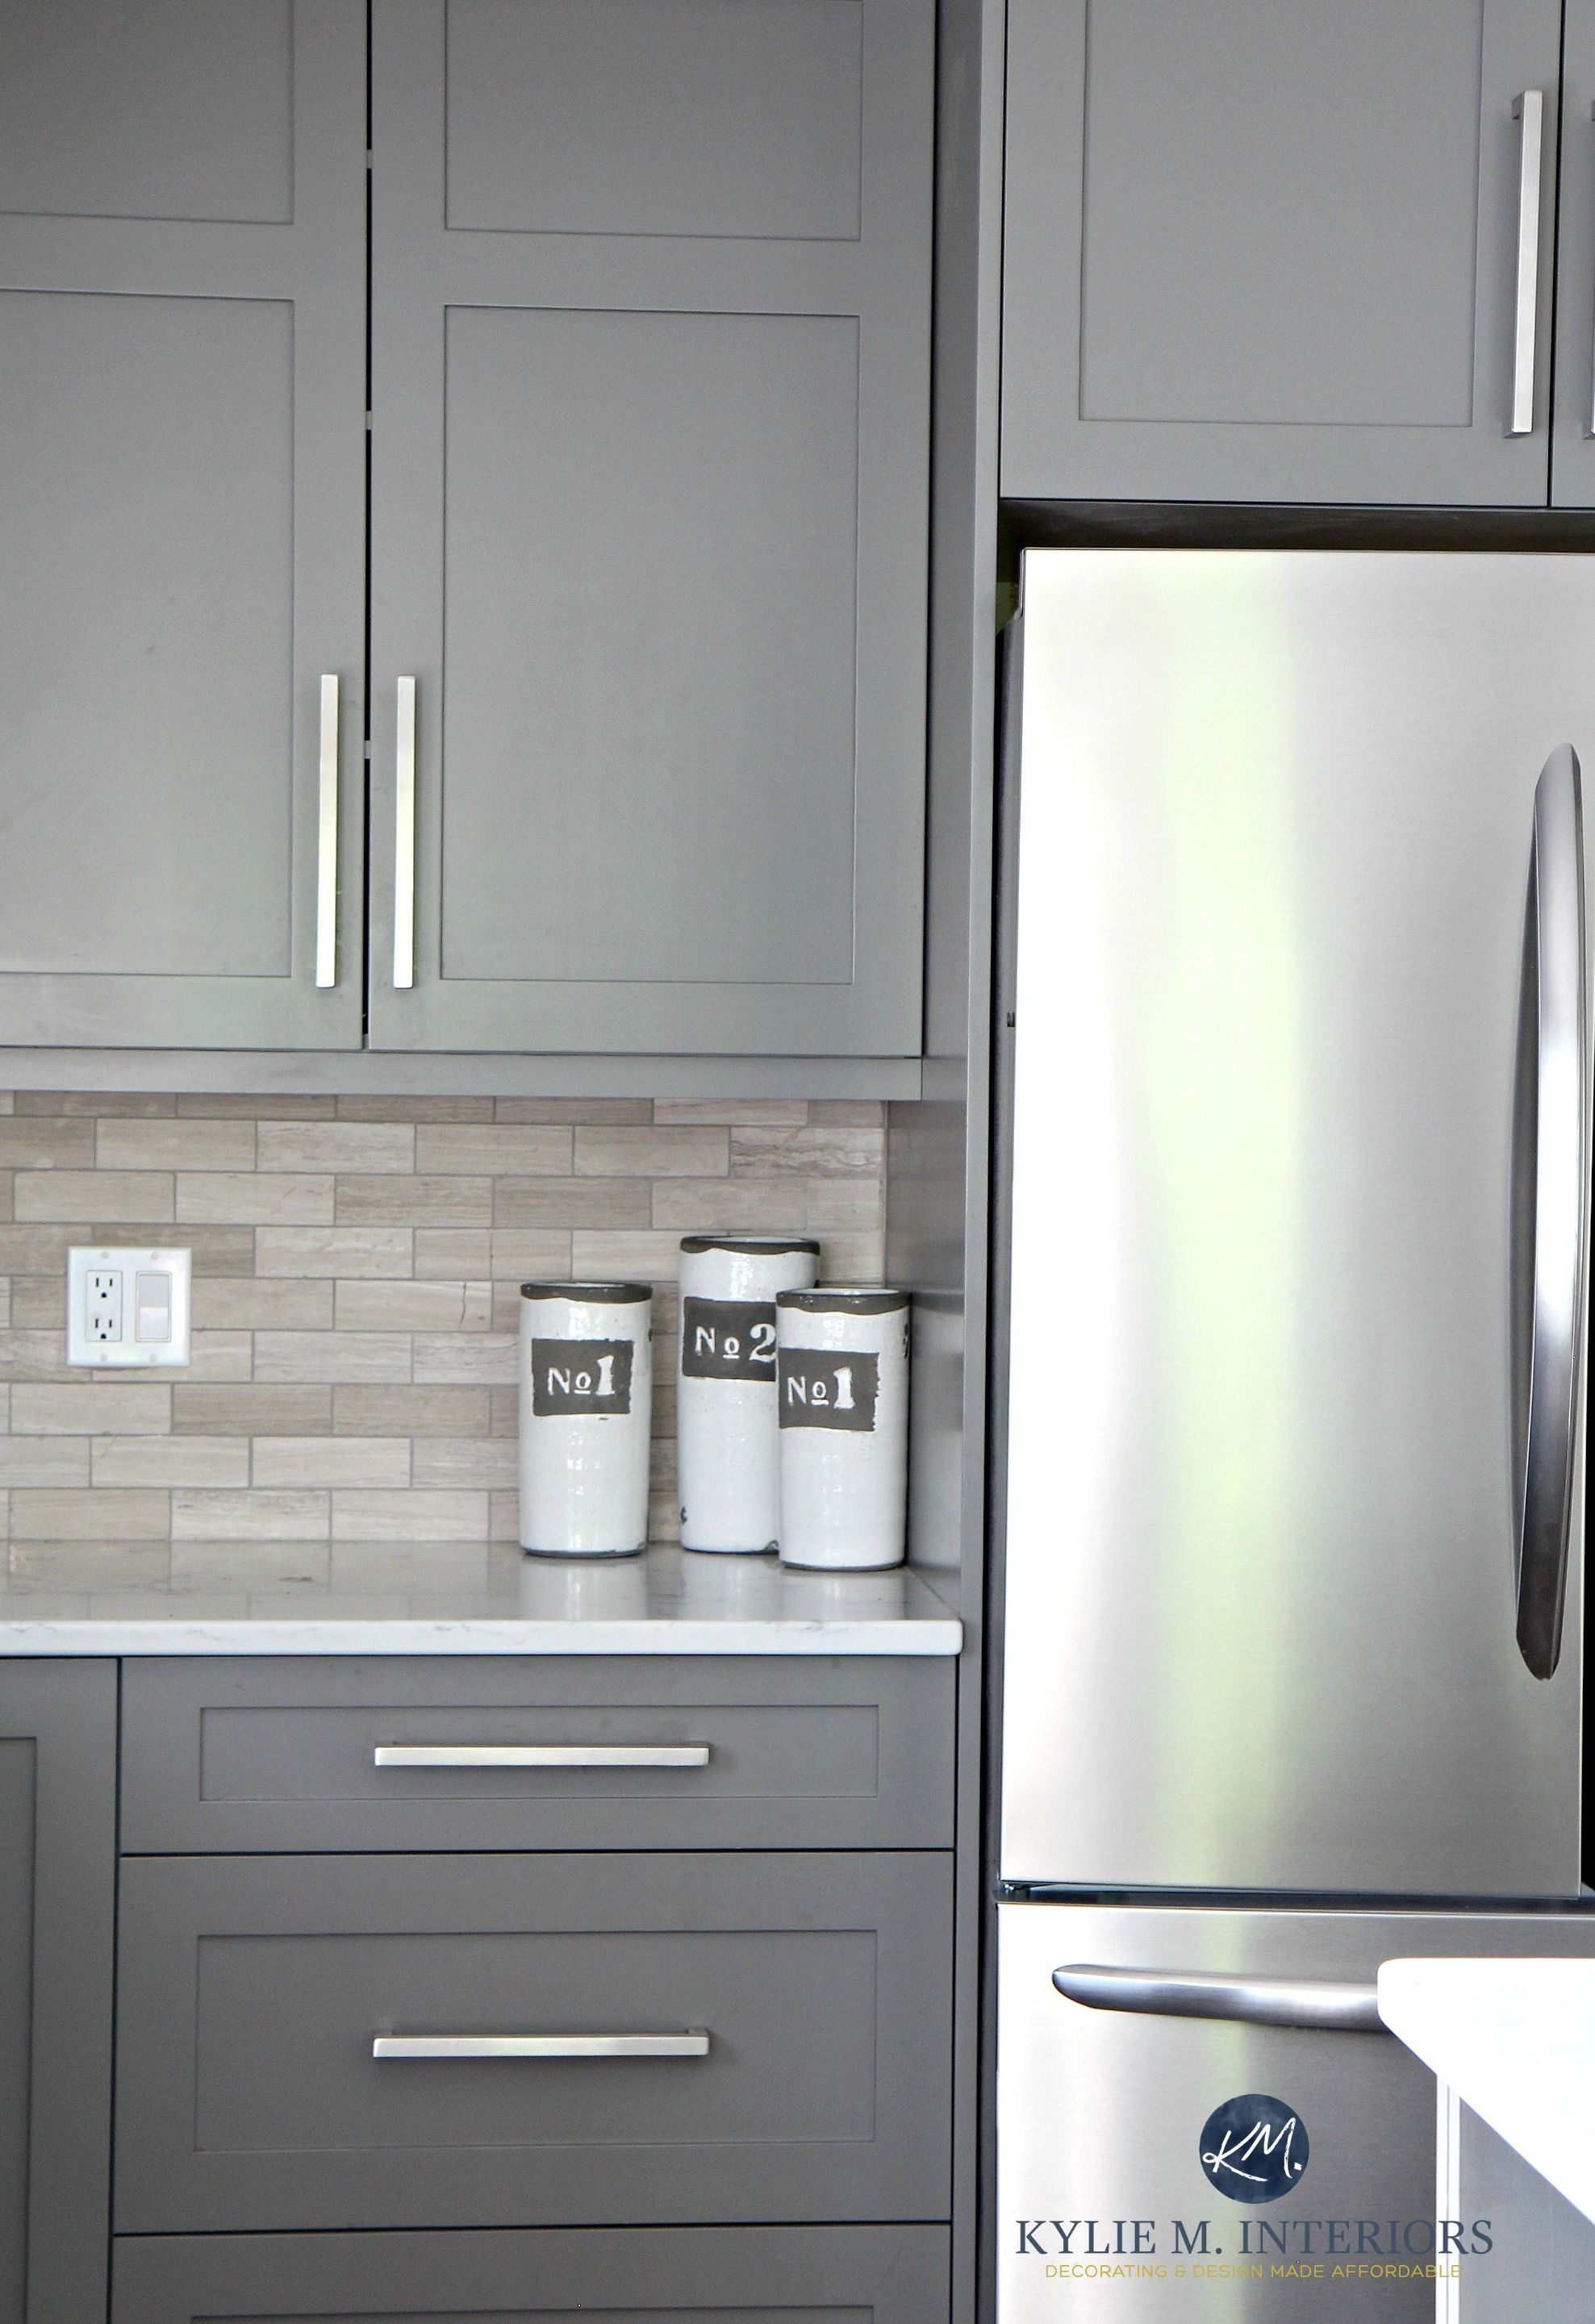 Benjamin Moore Amherst Gray painted cabinets driftwood backspash in subway tile layout Kylie M